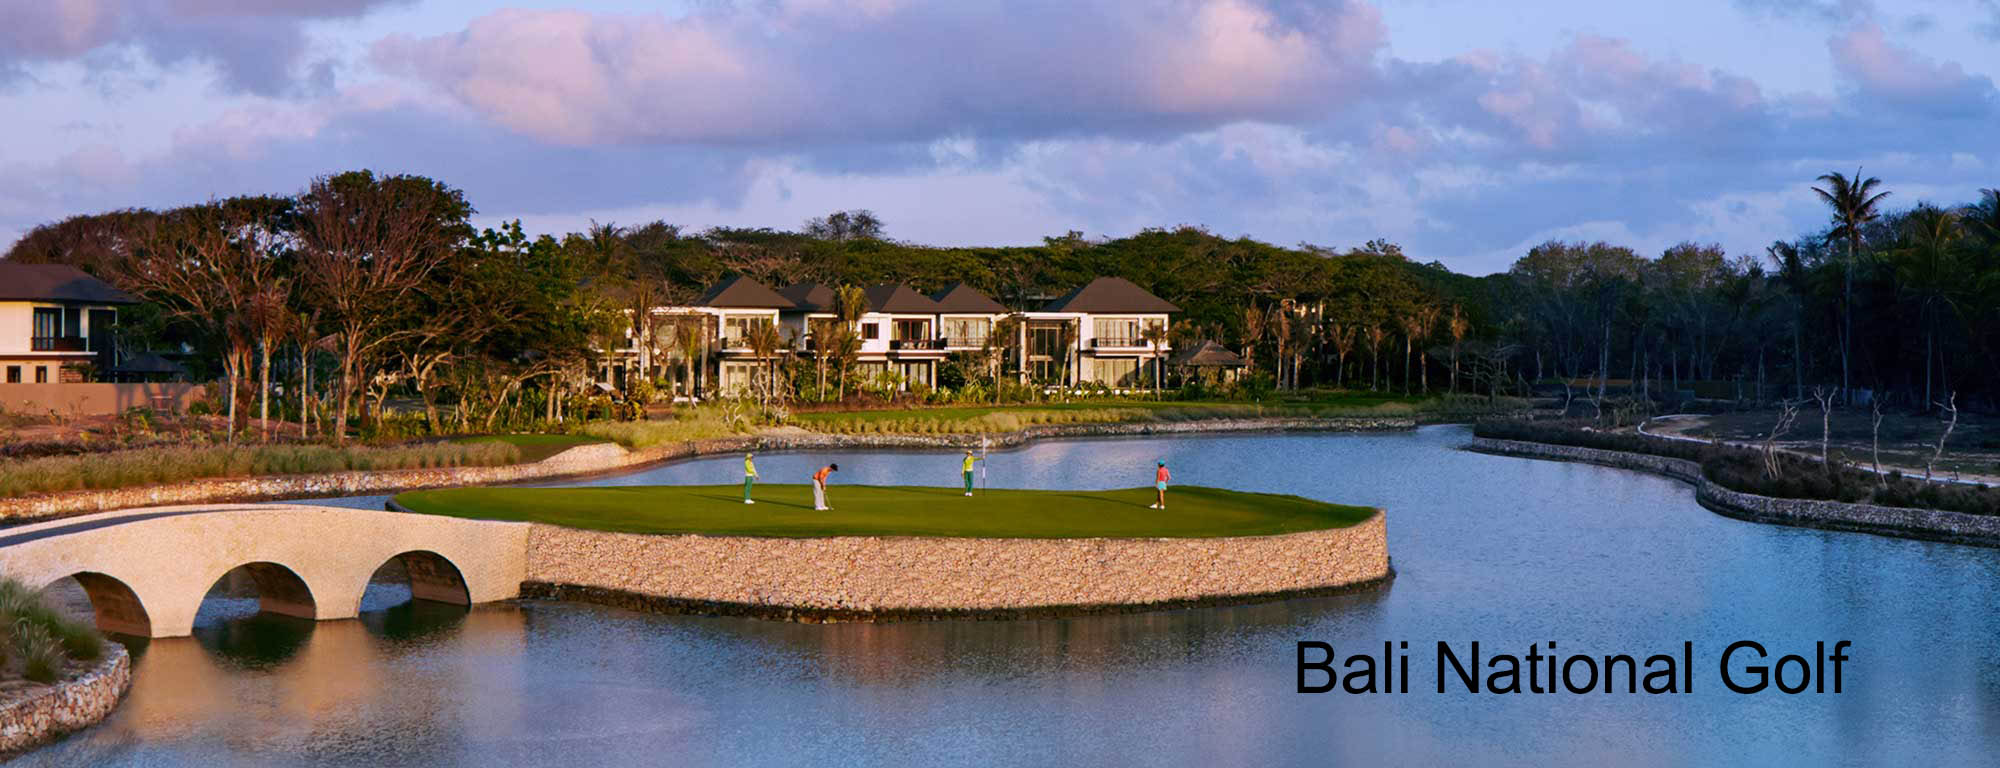 Bali National Golf – Promotion Rates